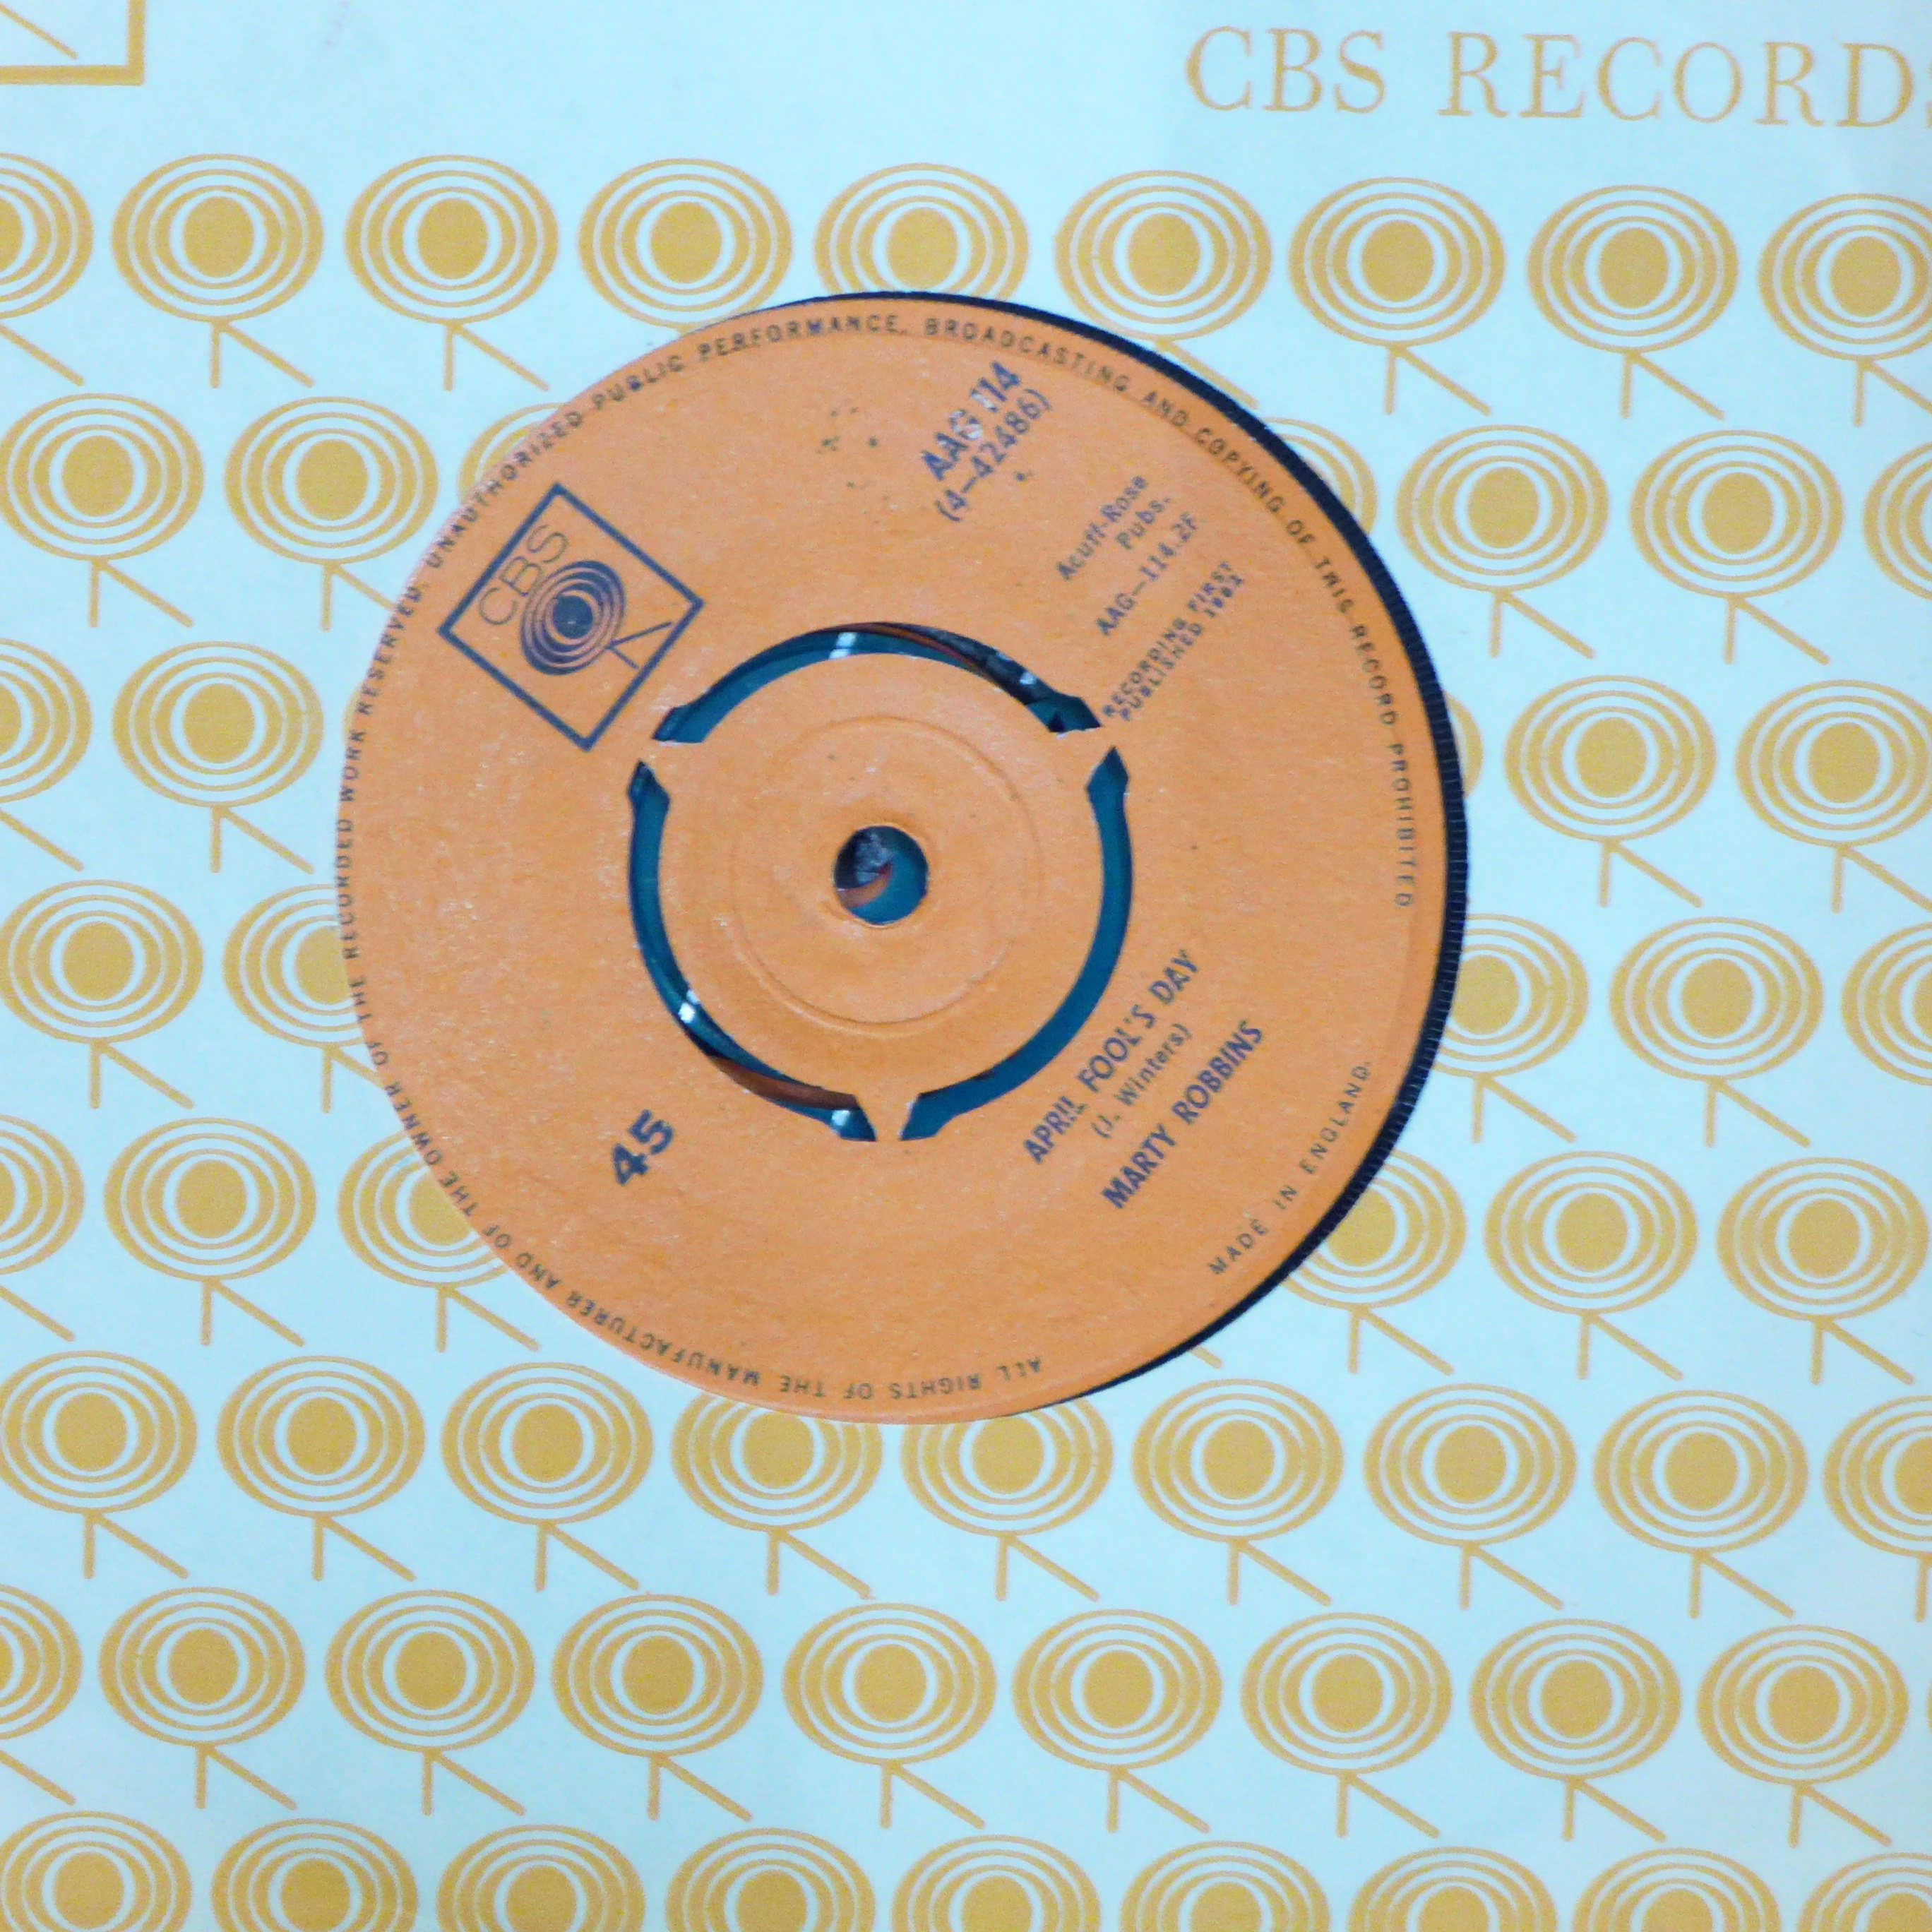 """Thirty-two 1960's 7"""" vinyl singles, pop music including The Beatles - Image 2 of 4"""